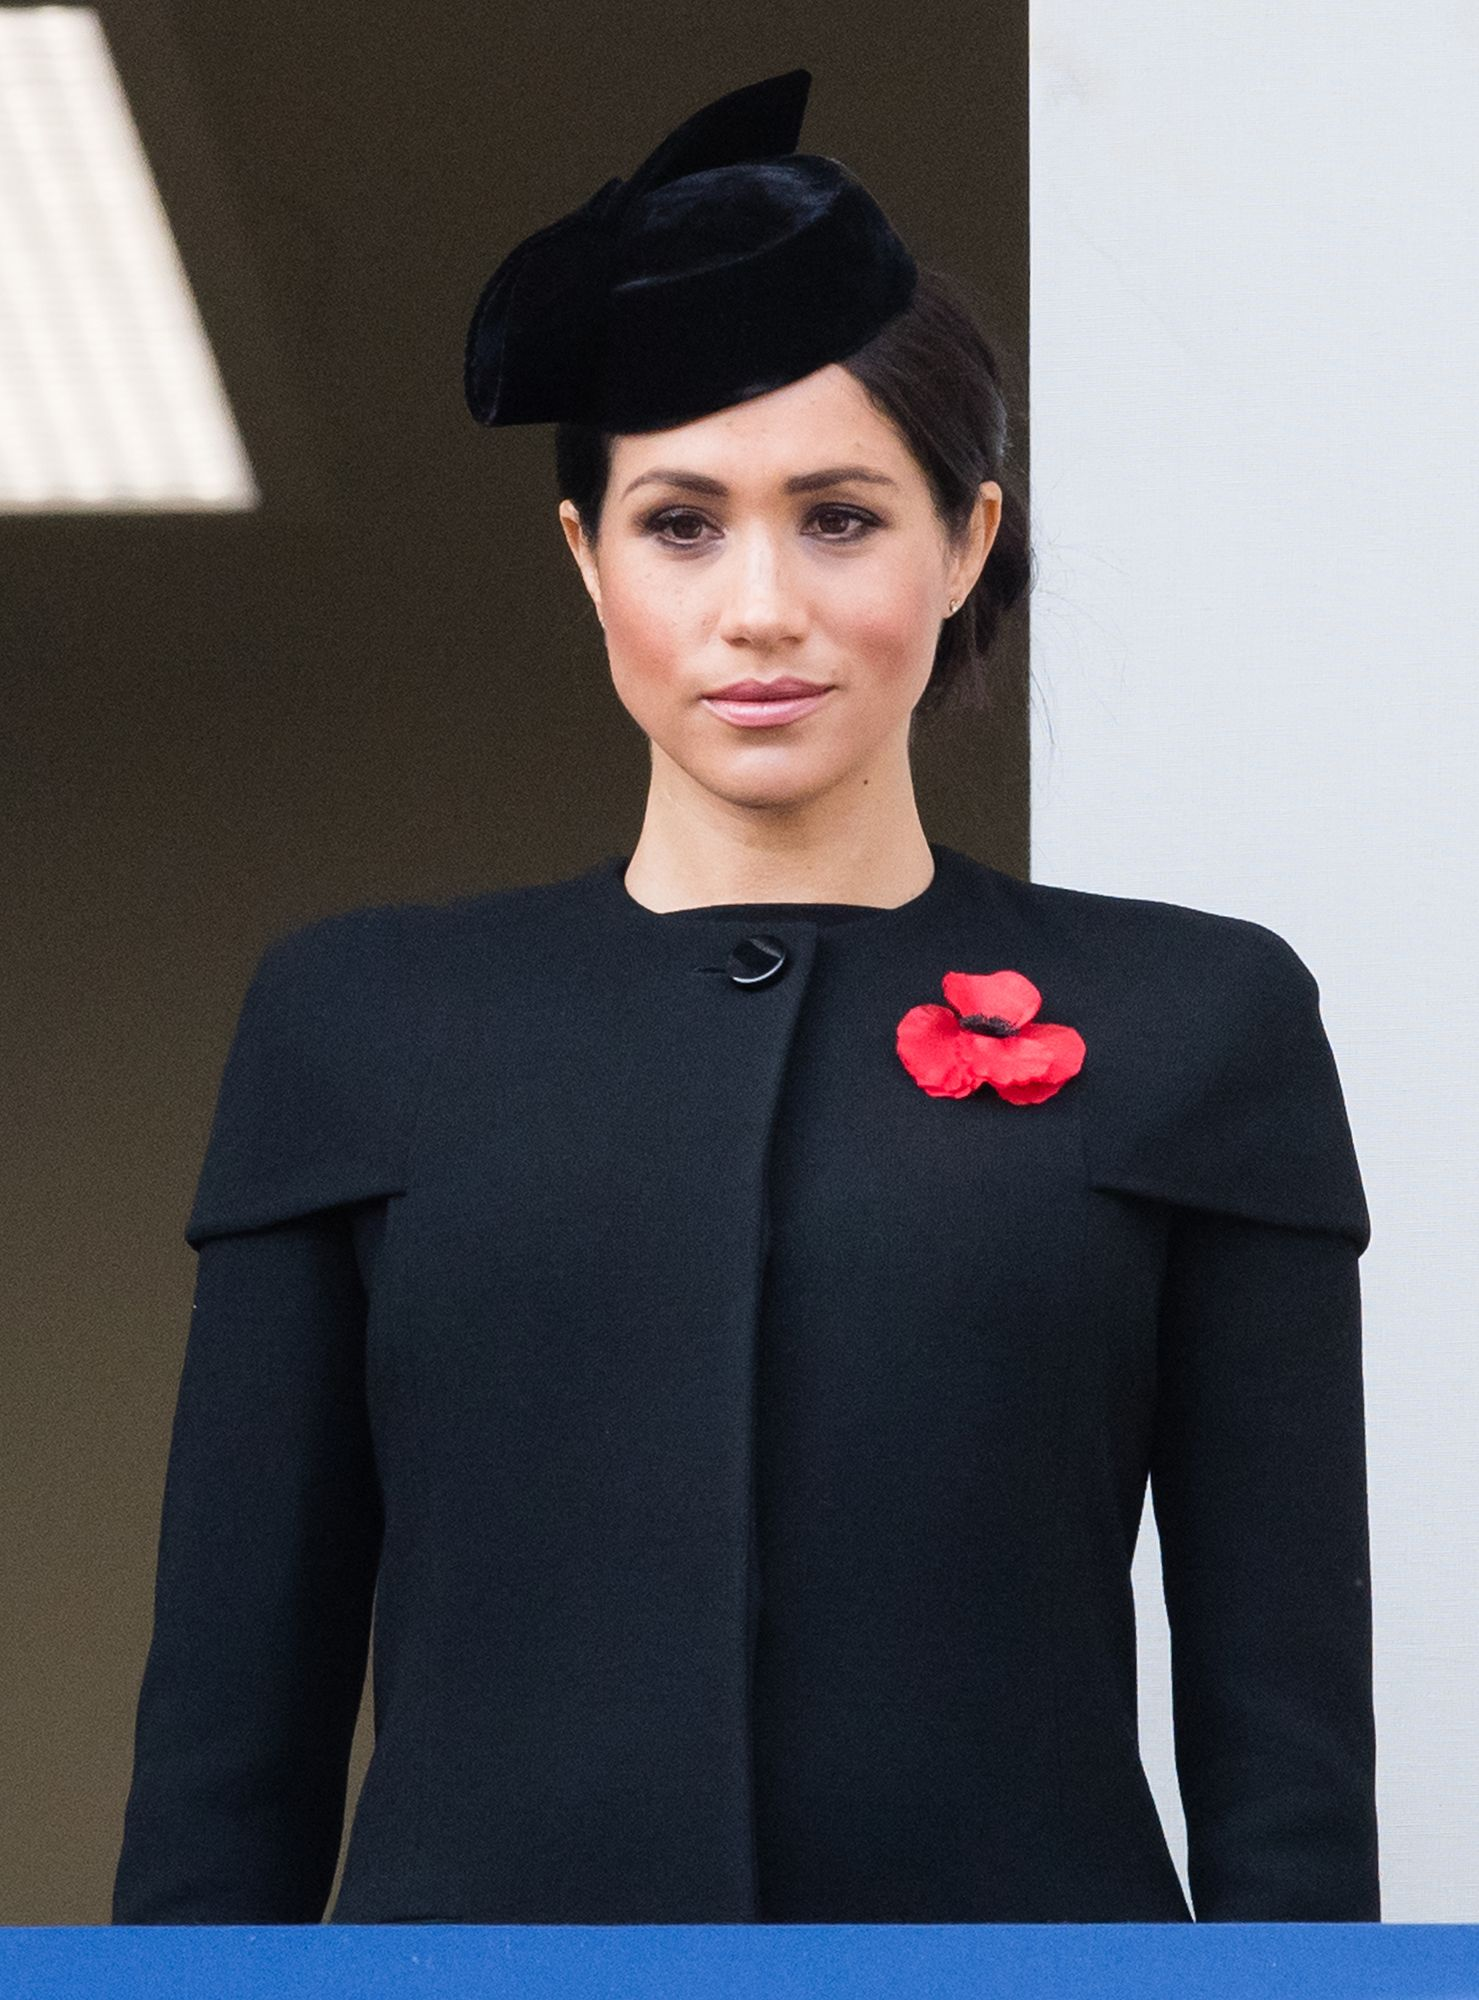 meghan harry kate and william join the queen for remembrance day ceremony in london meghan markle style remembrance day dress edition meghan markle style remembrance day